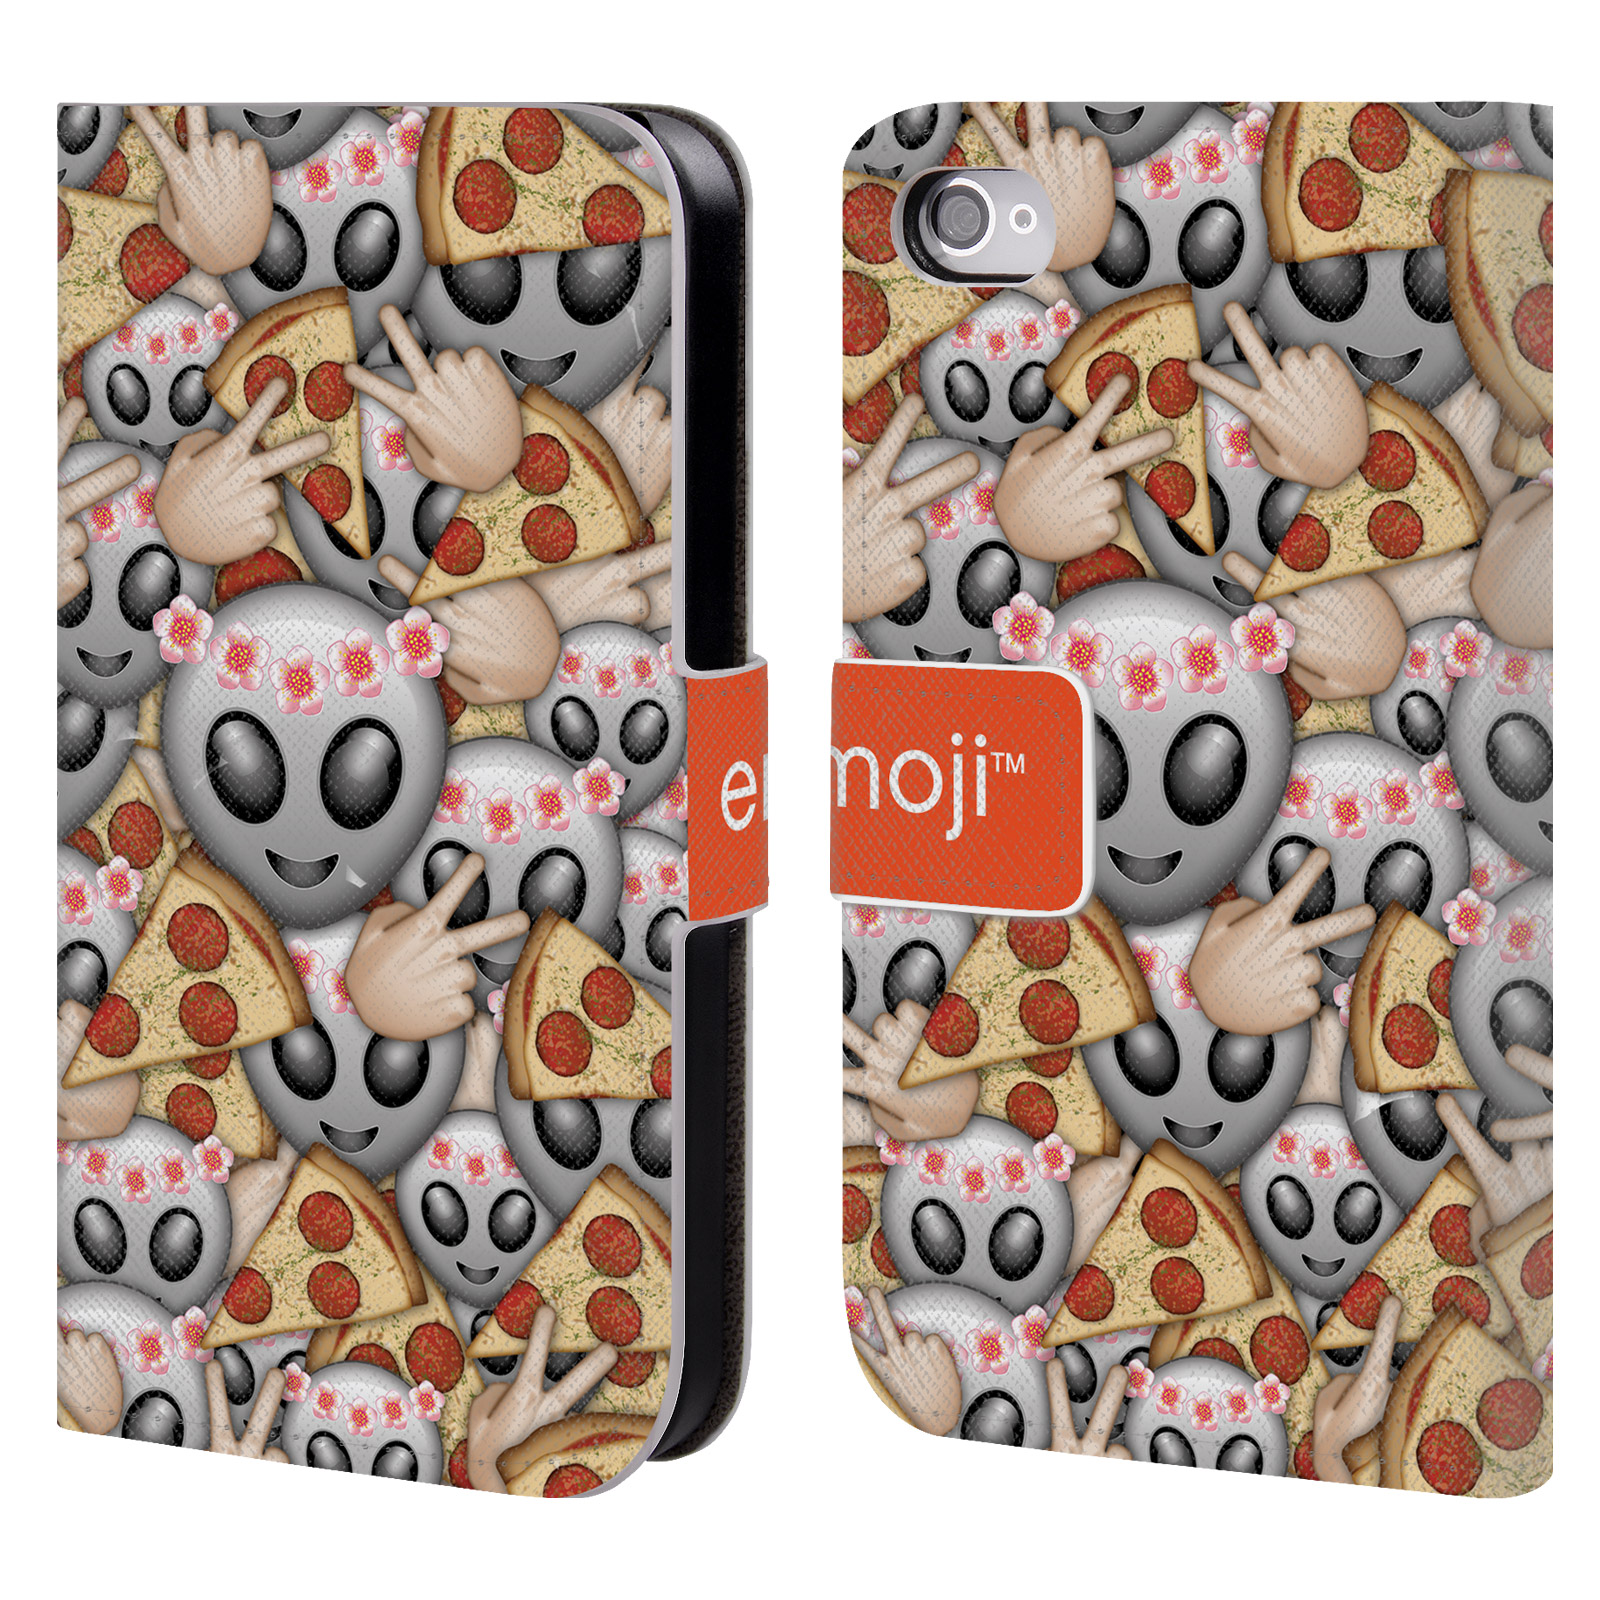 OFFICIAL EMOJI FULL PATTERNS LEATHER BOOK WALLET CASE COVER FOR APPLE IPHONE PHONES